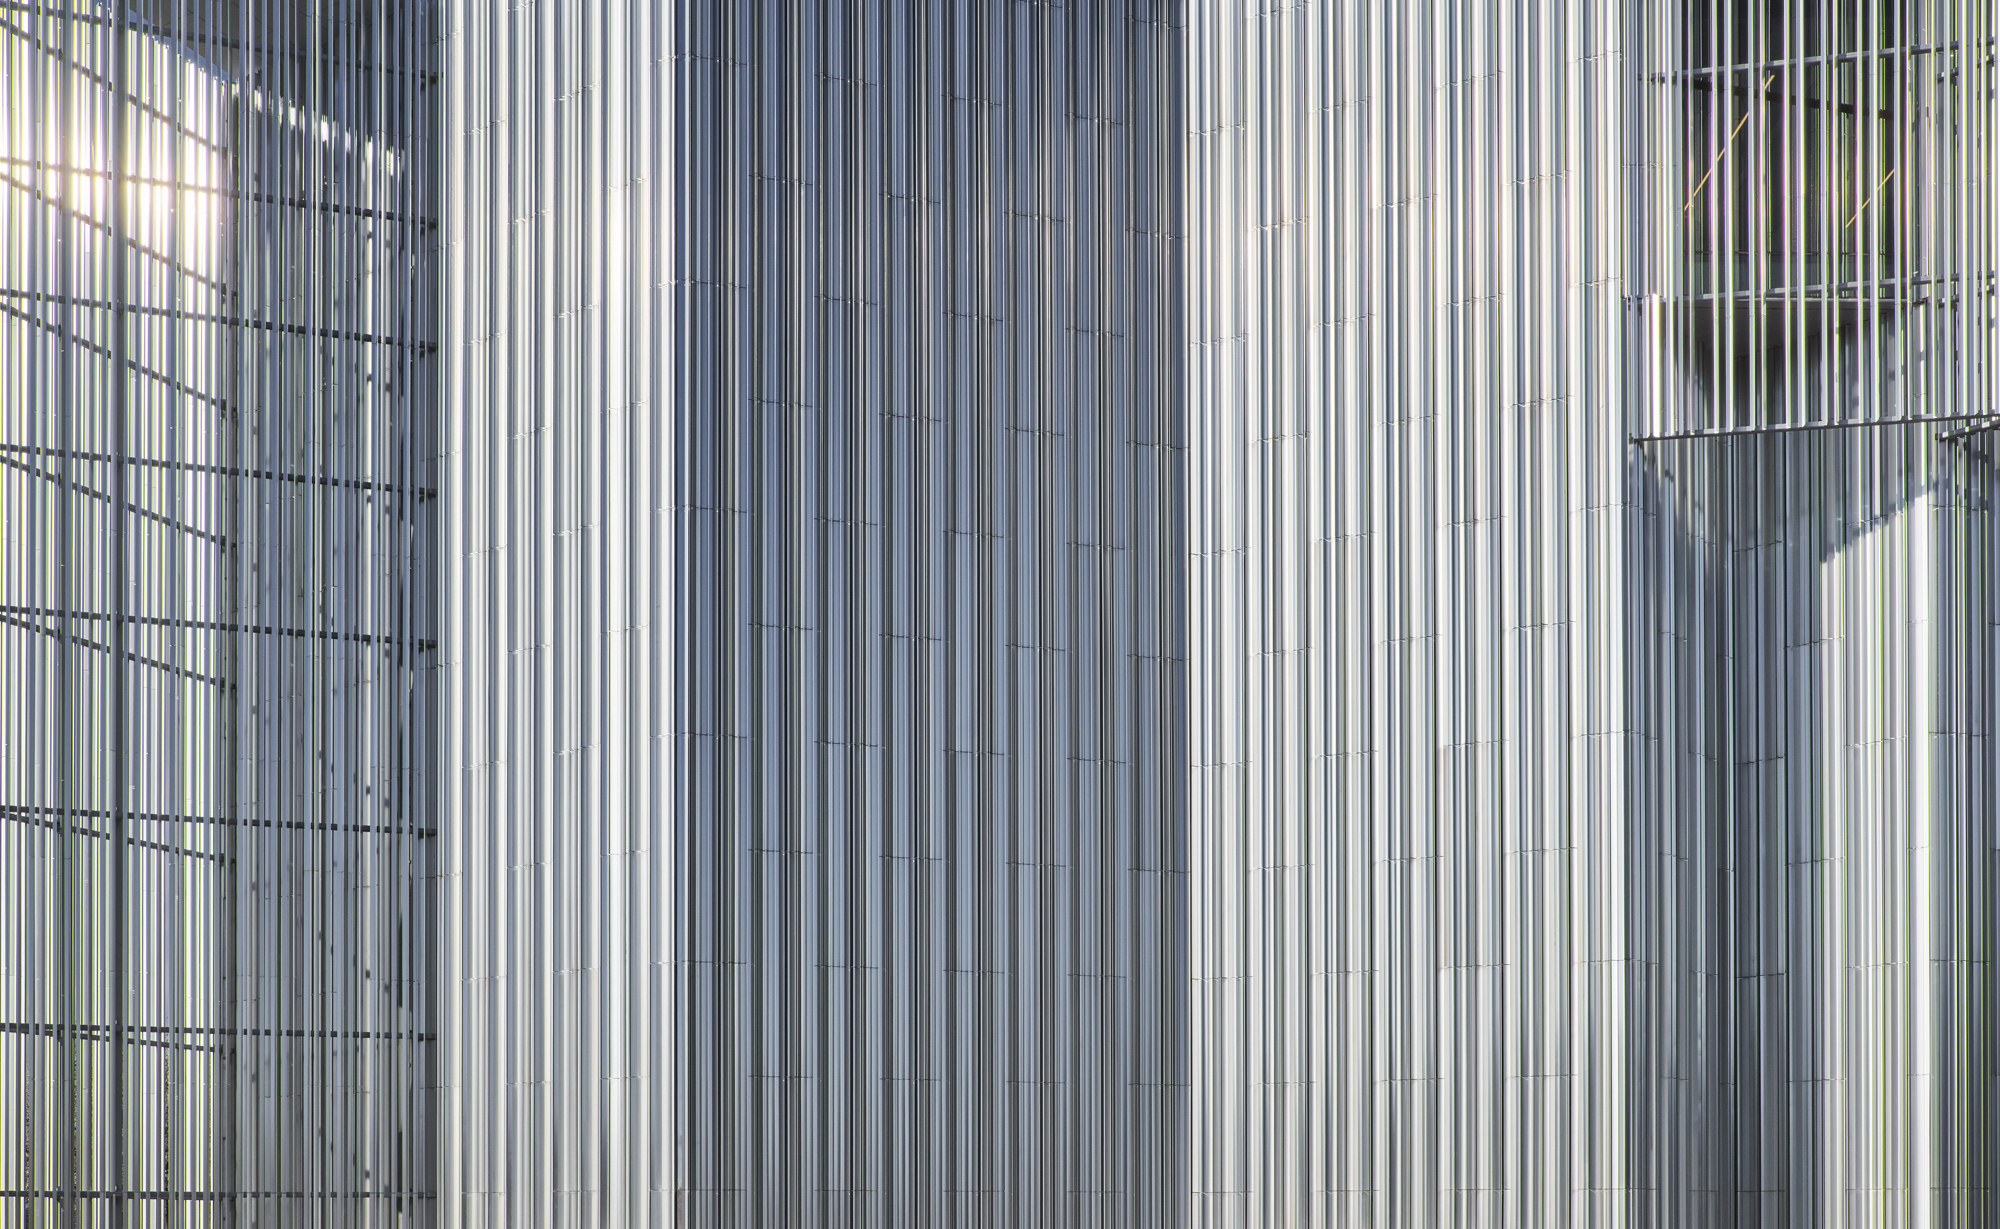 Detail image of aluminum fins encasing a contemporary building